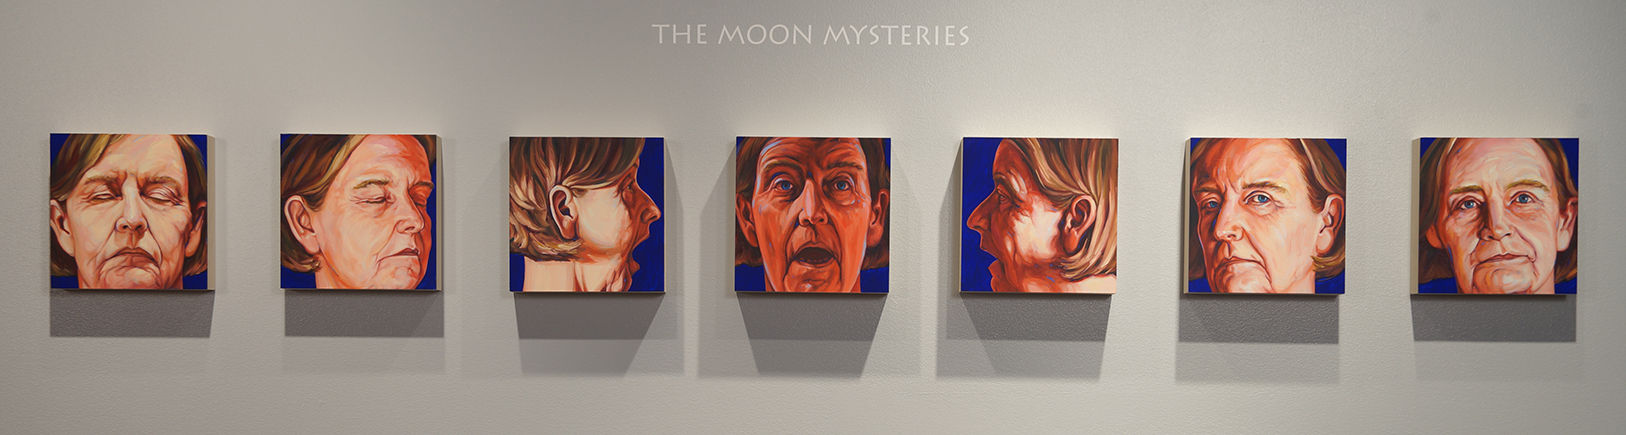 The Moon Mysteries